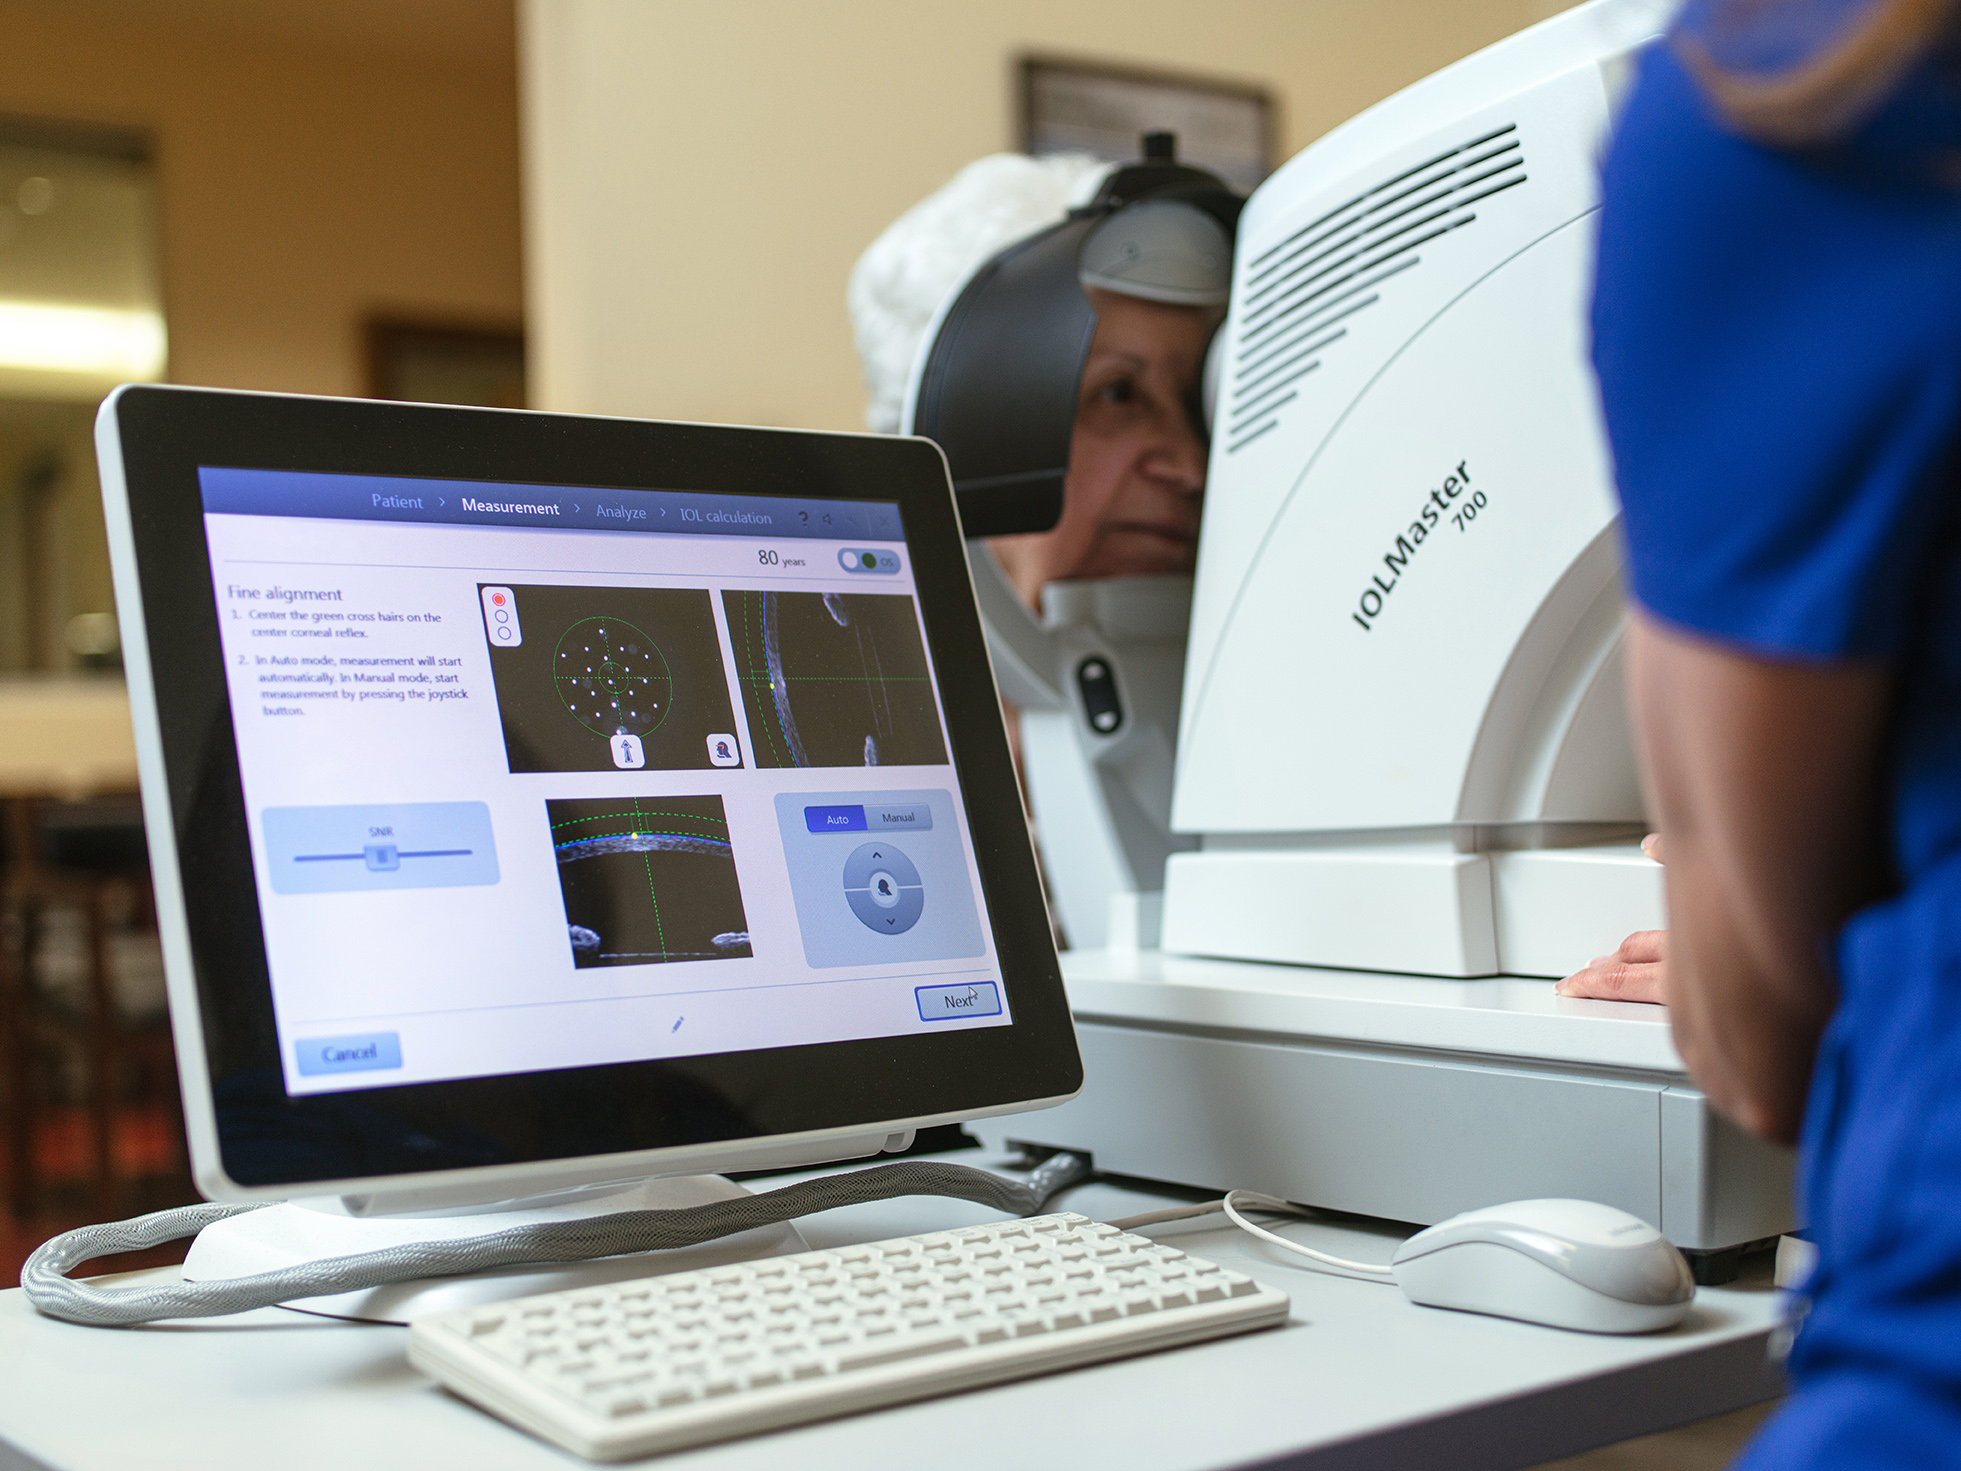 Screen showing eye scan with elderly woman at machine behind